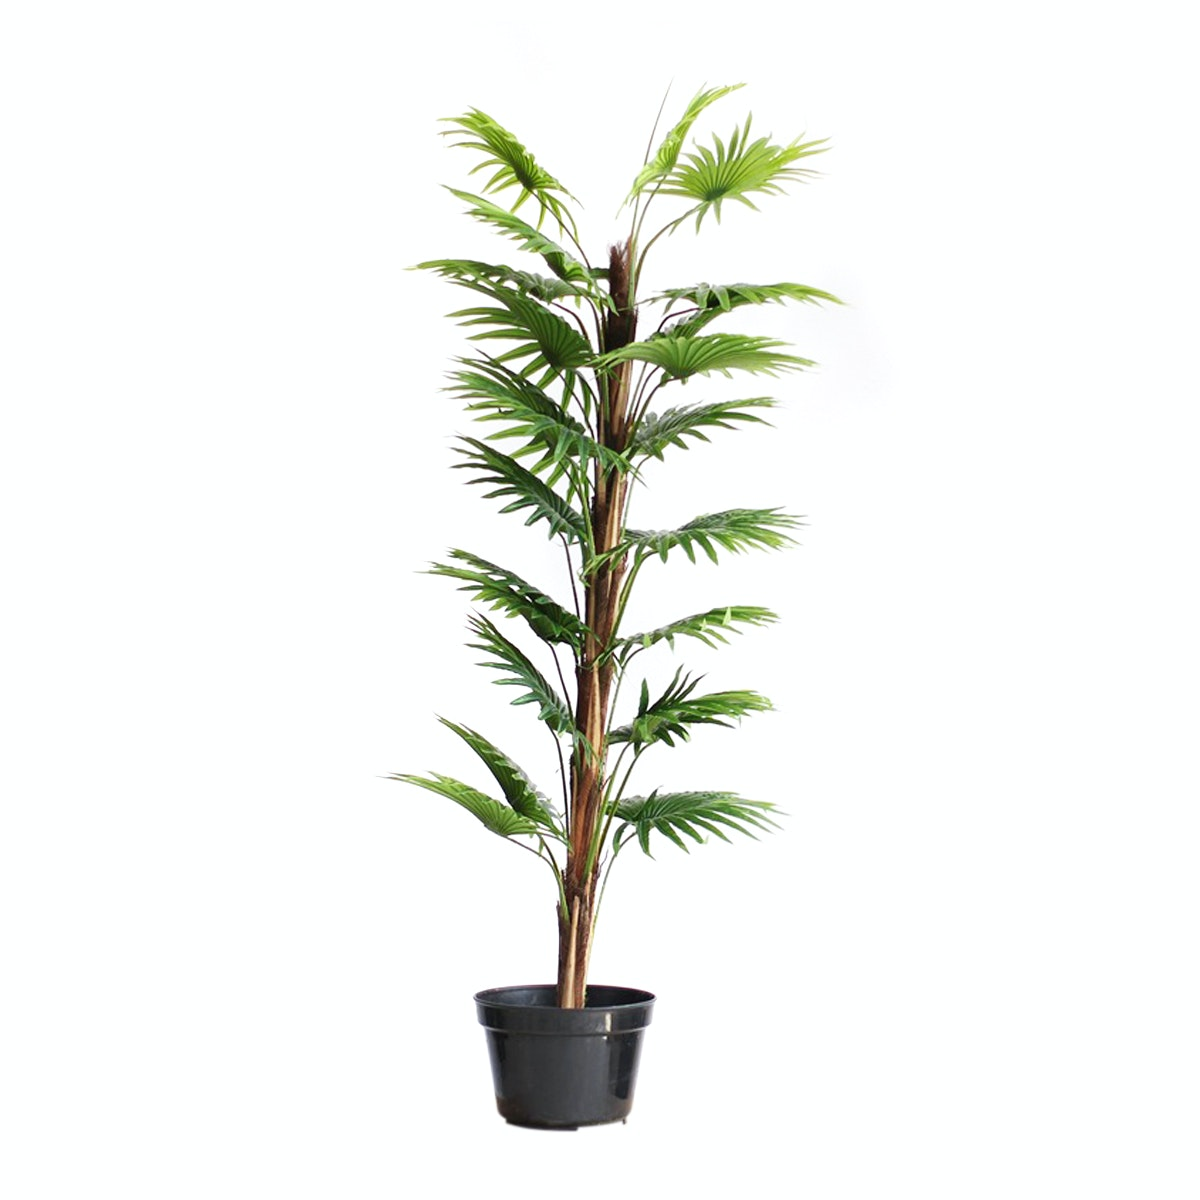 Thema Home Artificial Plant 2396 Fan Kwai A3